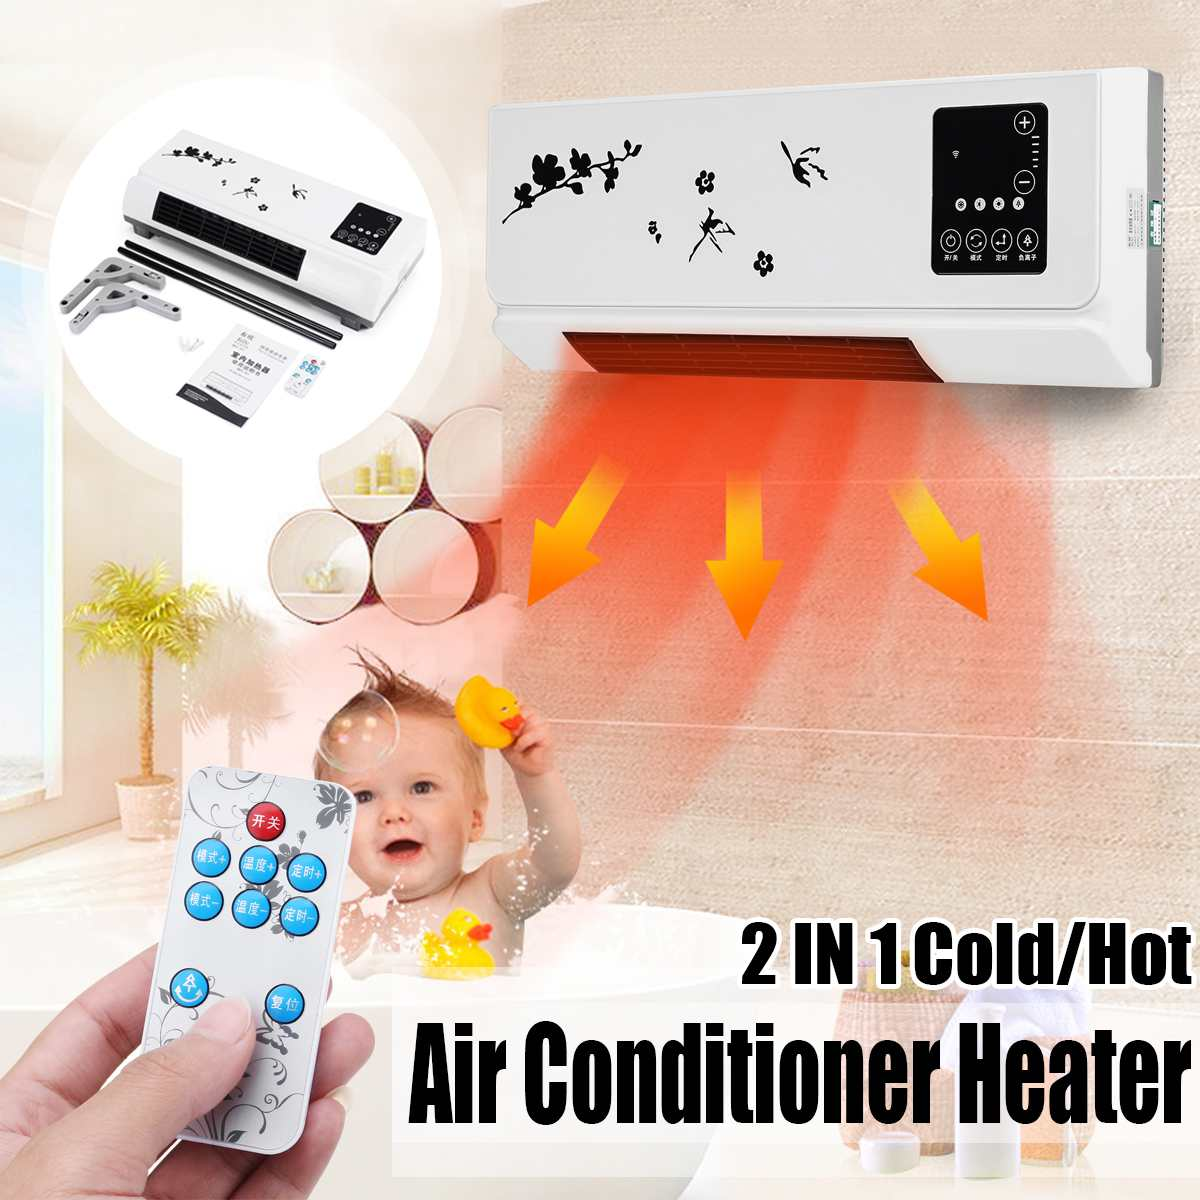 220V 2000W Wall mounted Remote Control Heater Home Energy Saving Heating Heating Fan Bathroom Air Conditioning Hot Air Heating|Electric Heaters| |  - title=